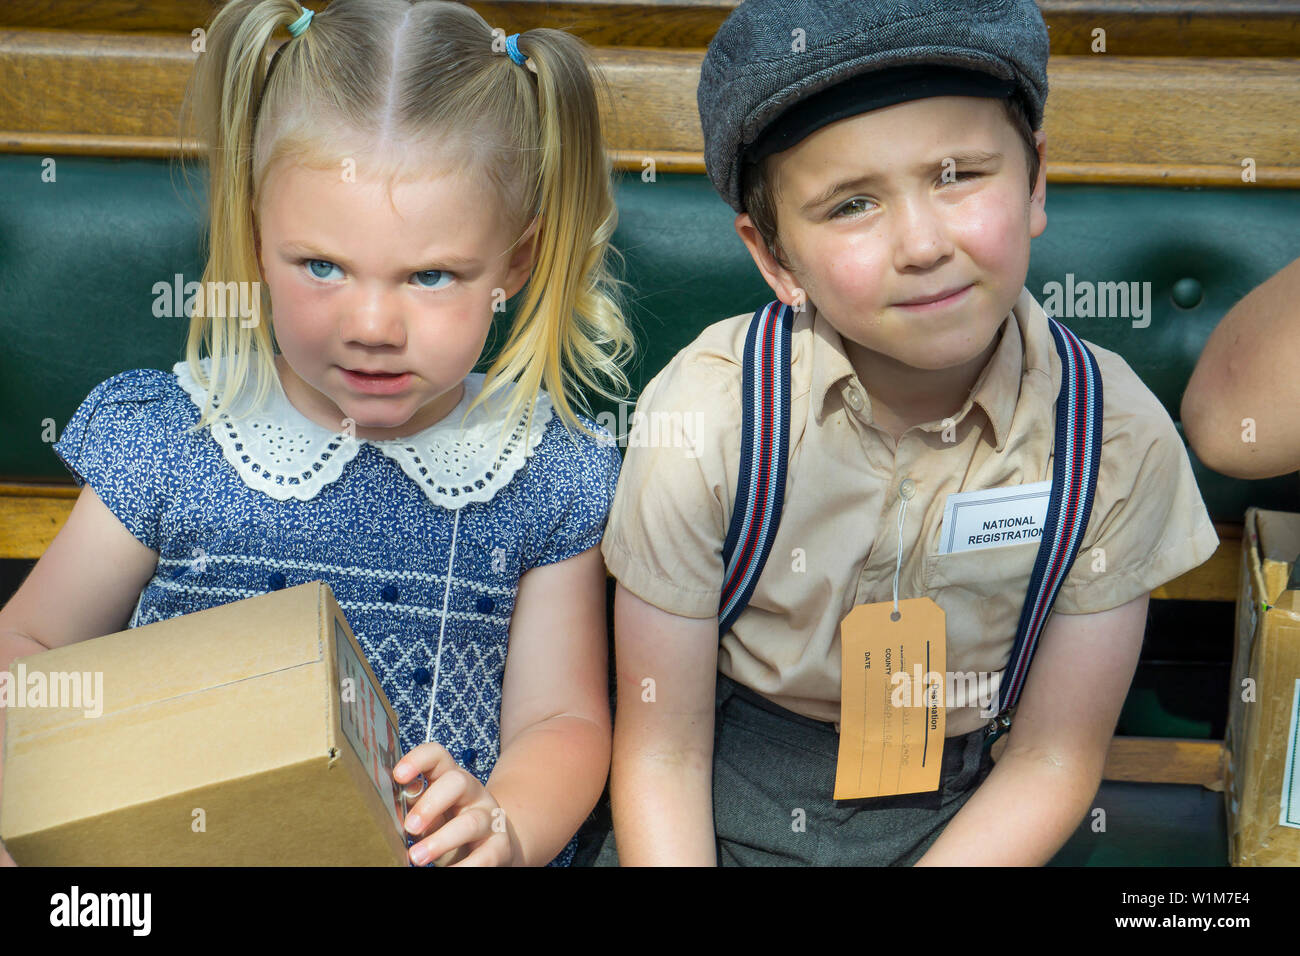 Kidderminster, UK. 29th June, 2019. Severn Valley Railways 'Step back to the 1940's' gets off to a fabulous start this weekend with costumed re-enactors playing their part in providing an authentic recreation of wartime Britain. Young evacuee children, wearing name tags, sit waiting at a vintage railway station ready for the journey to their temporary new home in the countryside. Credit: Lee Hudson - Stock Image